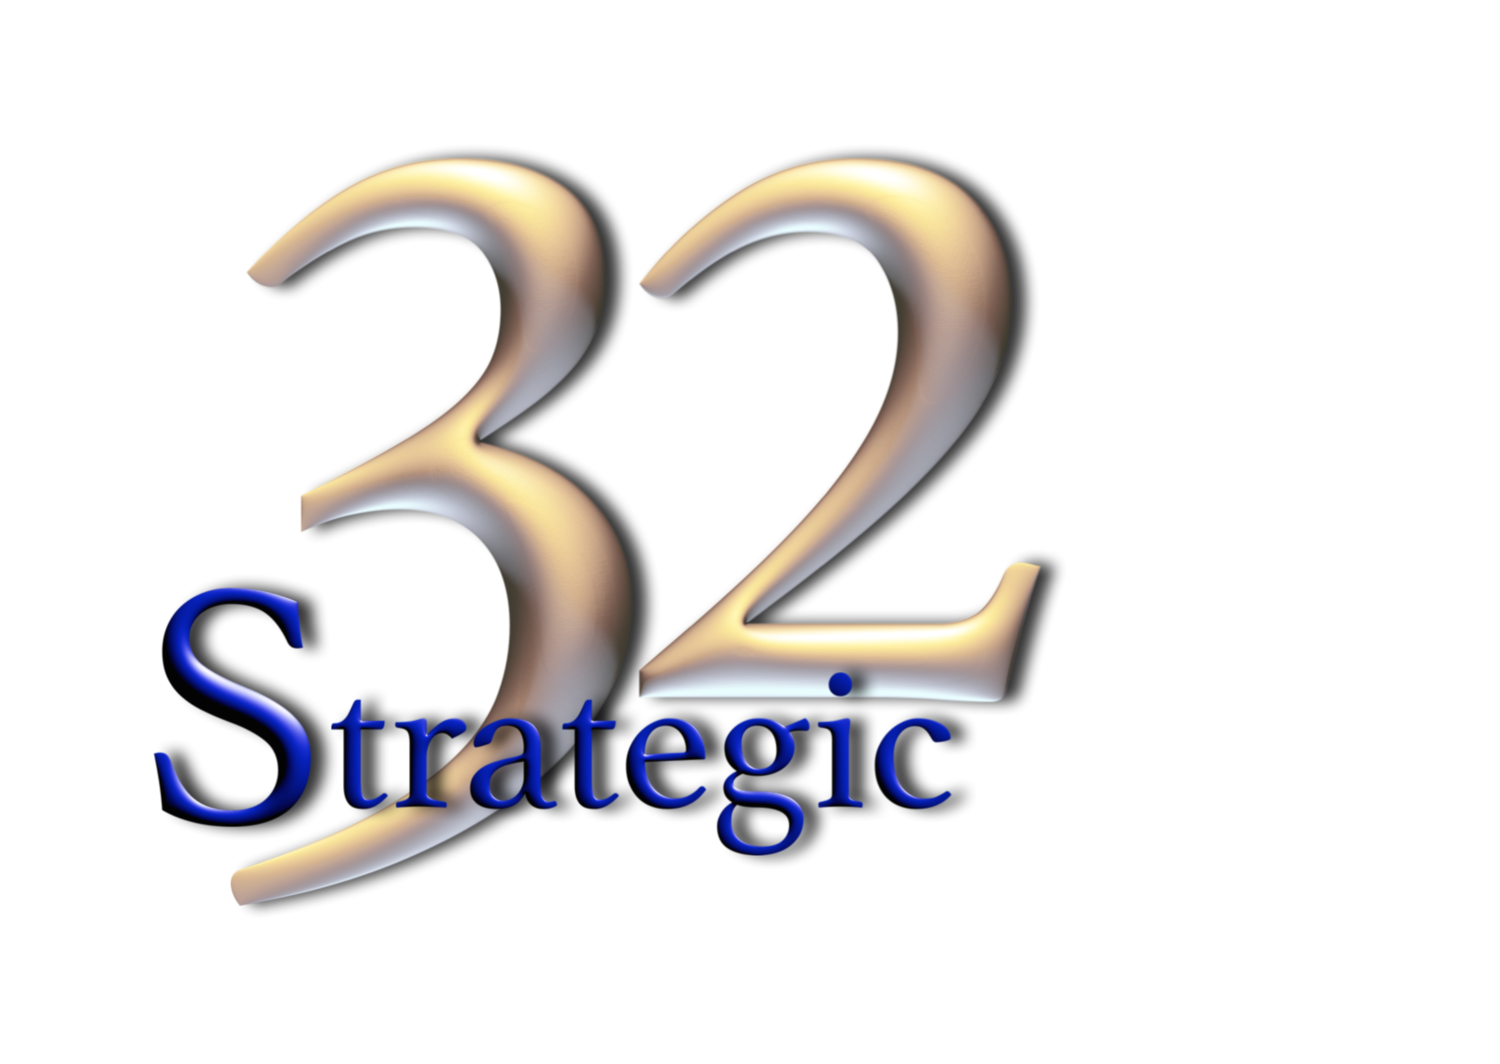 Strategic 32